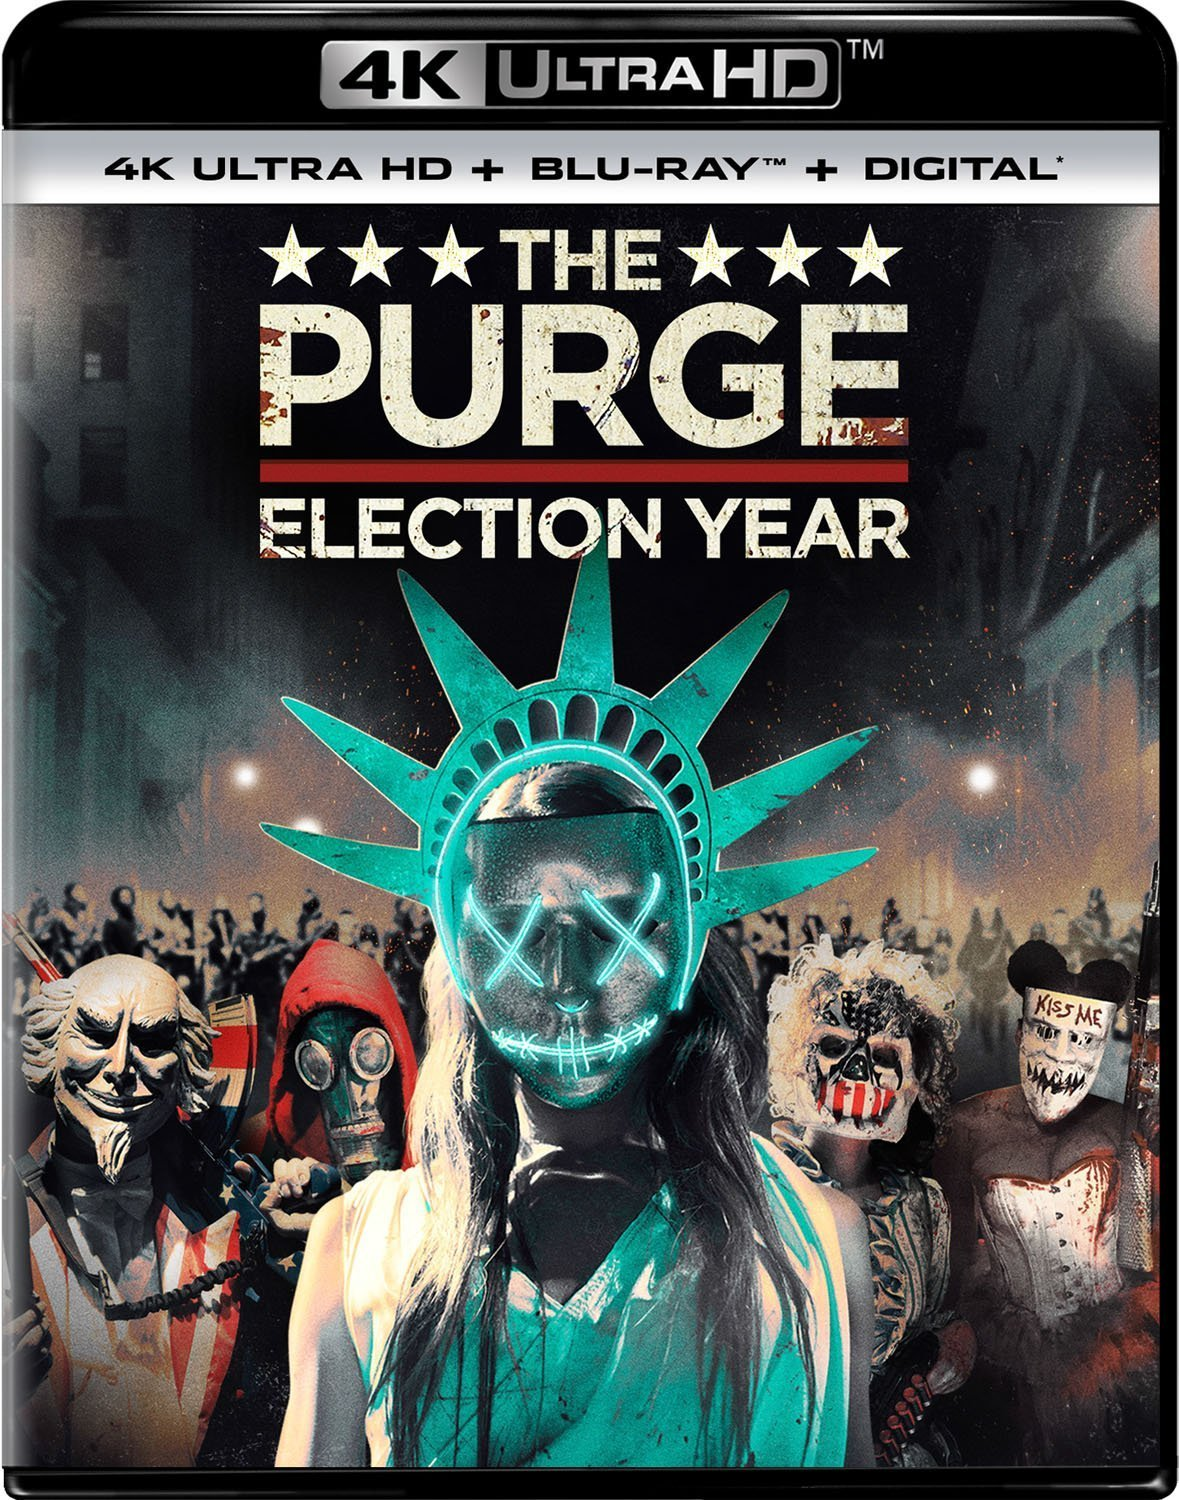 The Purge: Election Year 4K (2016) Ultra HD Blu-ray